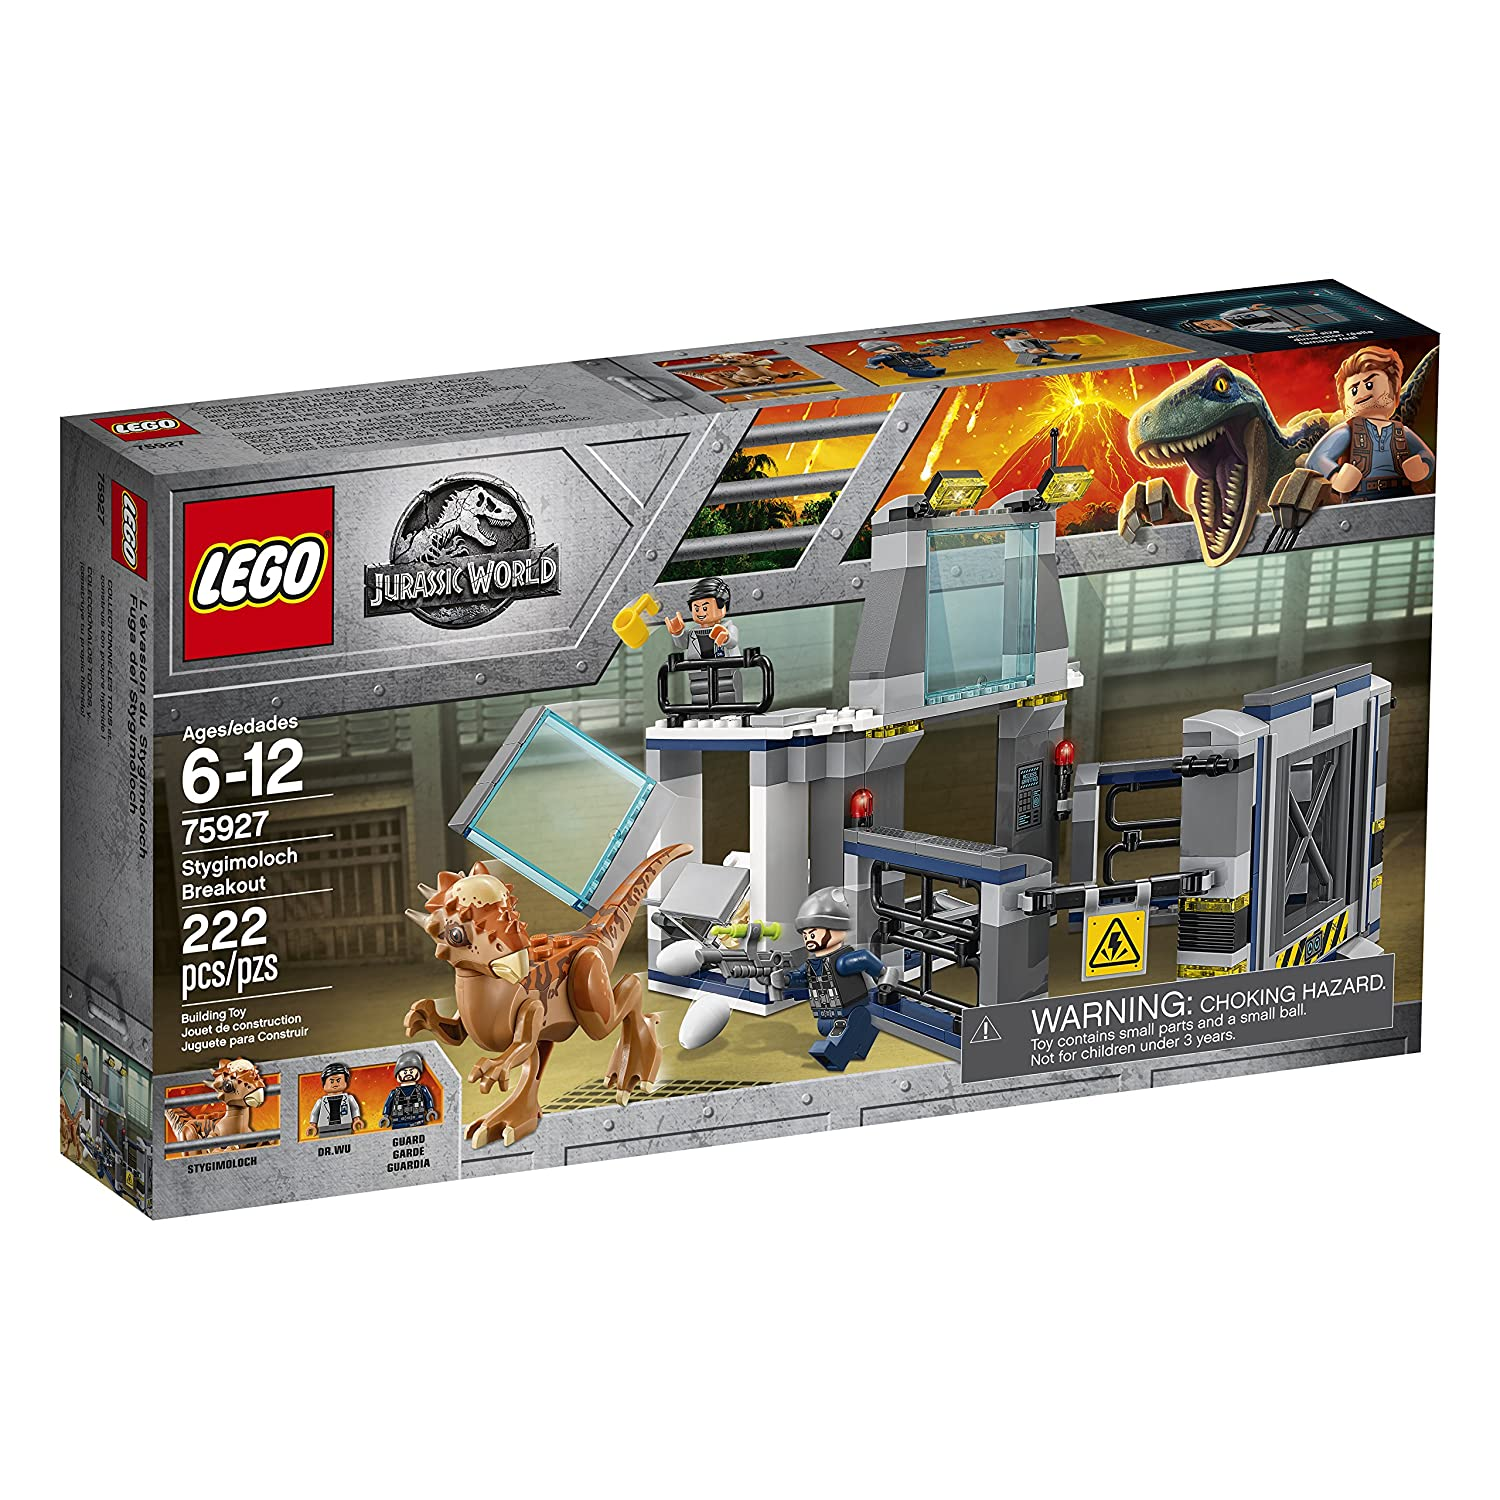 Top 9 Best Lego Jurassic Park Sets Reviews in 2021 18